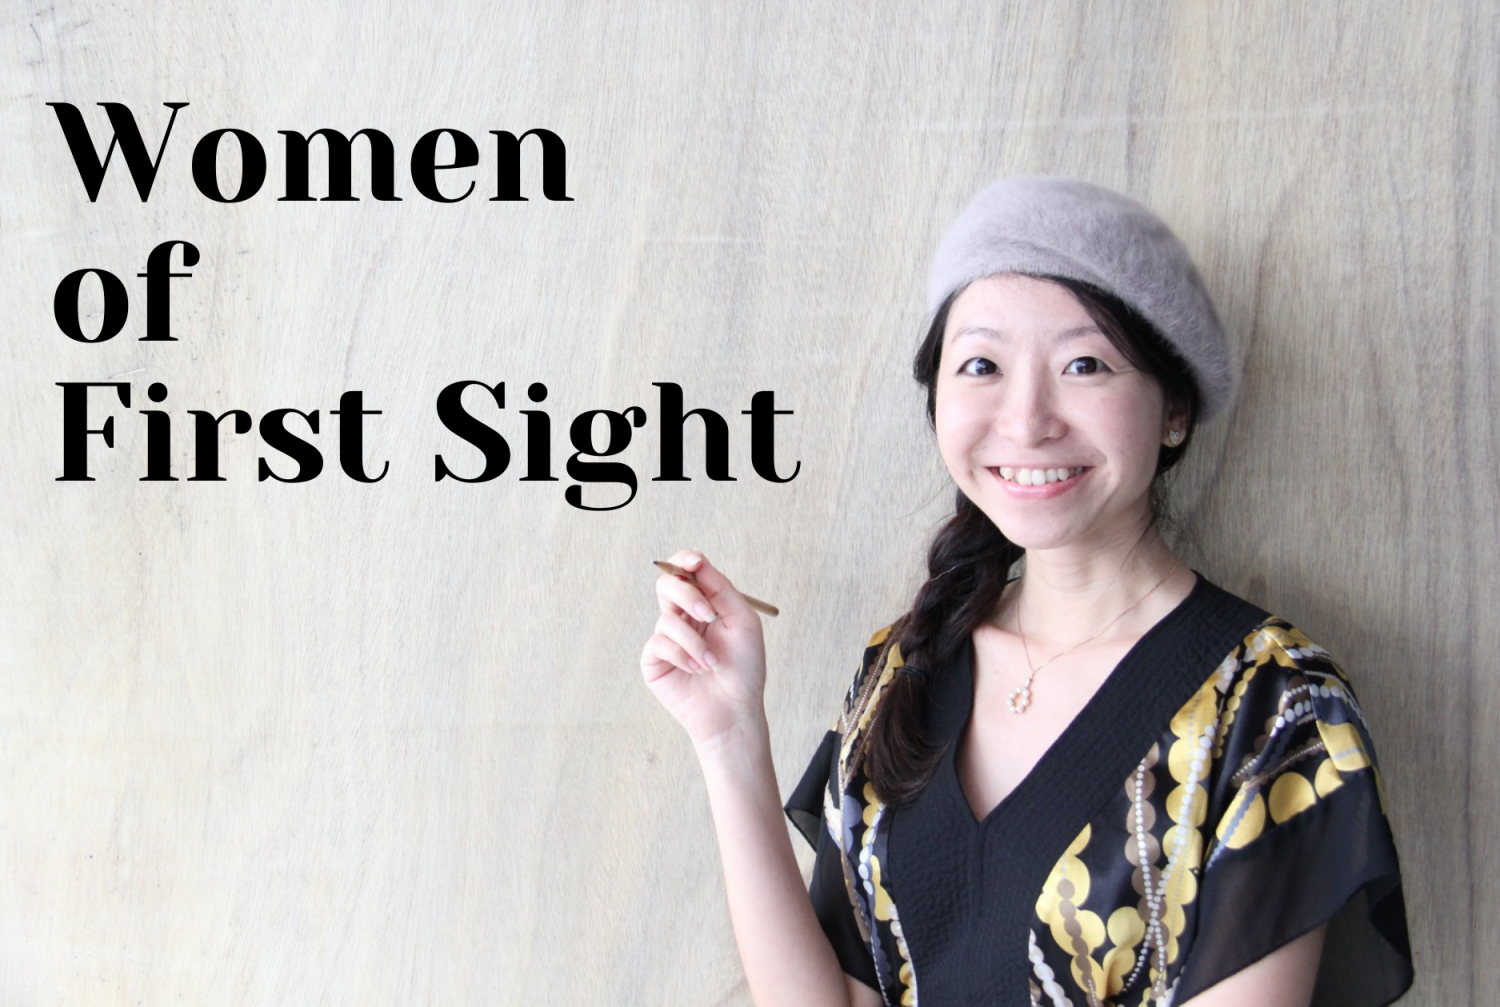 Women of First Sight